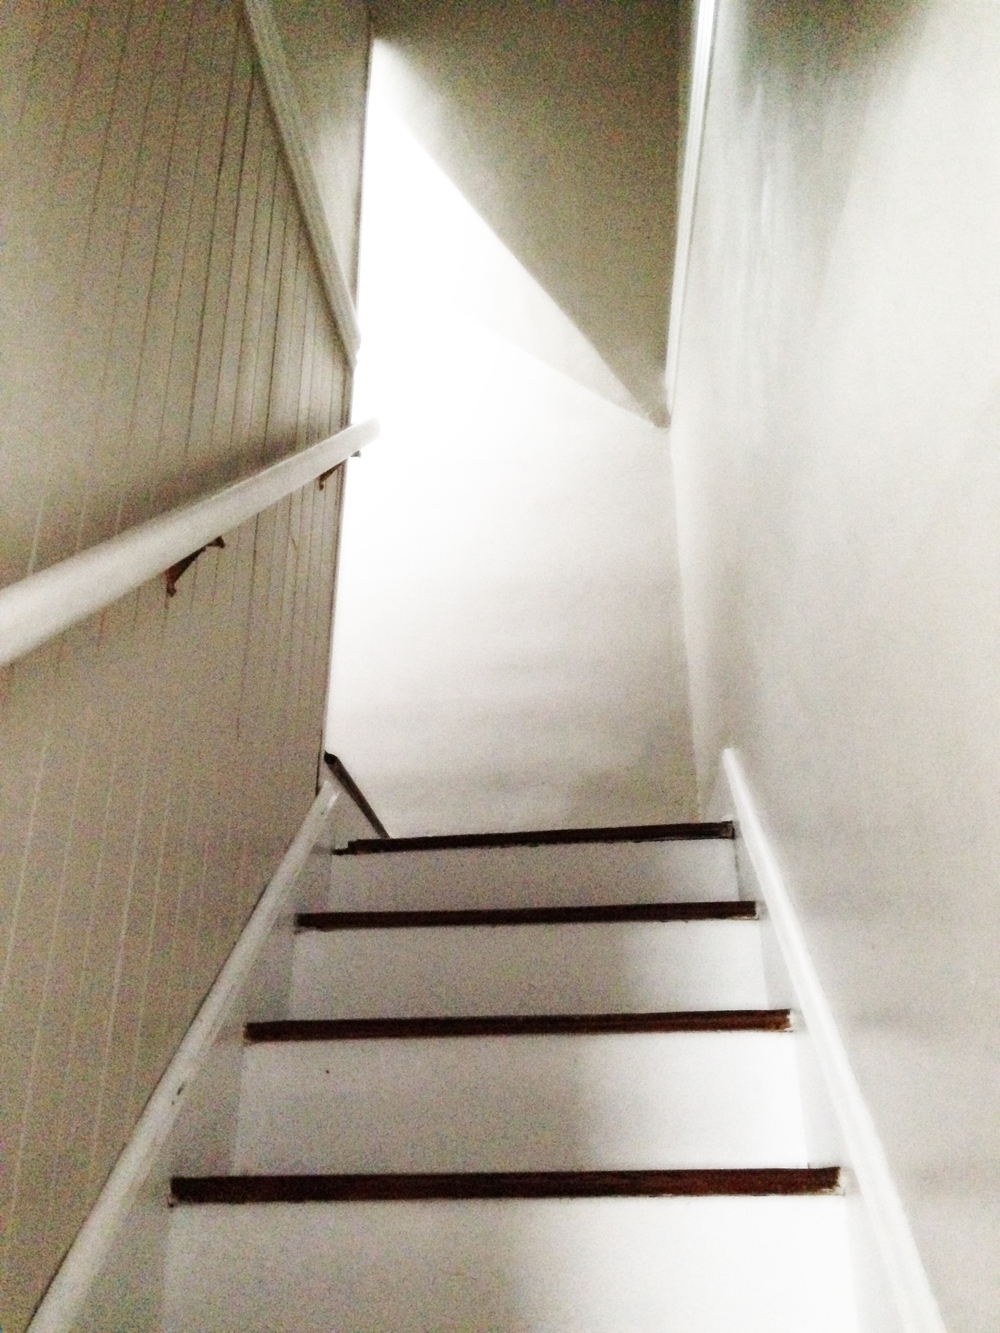 Stair-Thinking Hitchcock, VHS 2015, posted January 9, wk 29